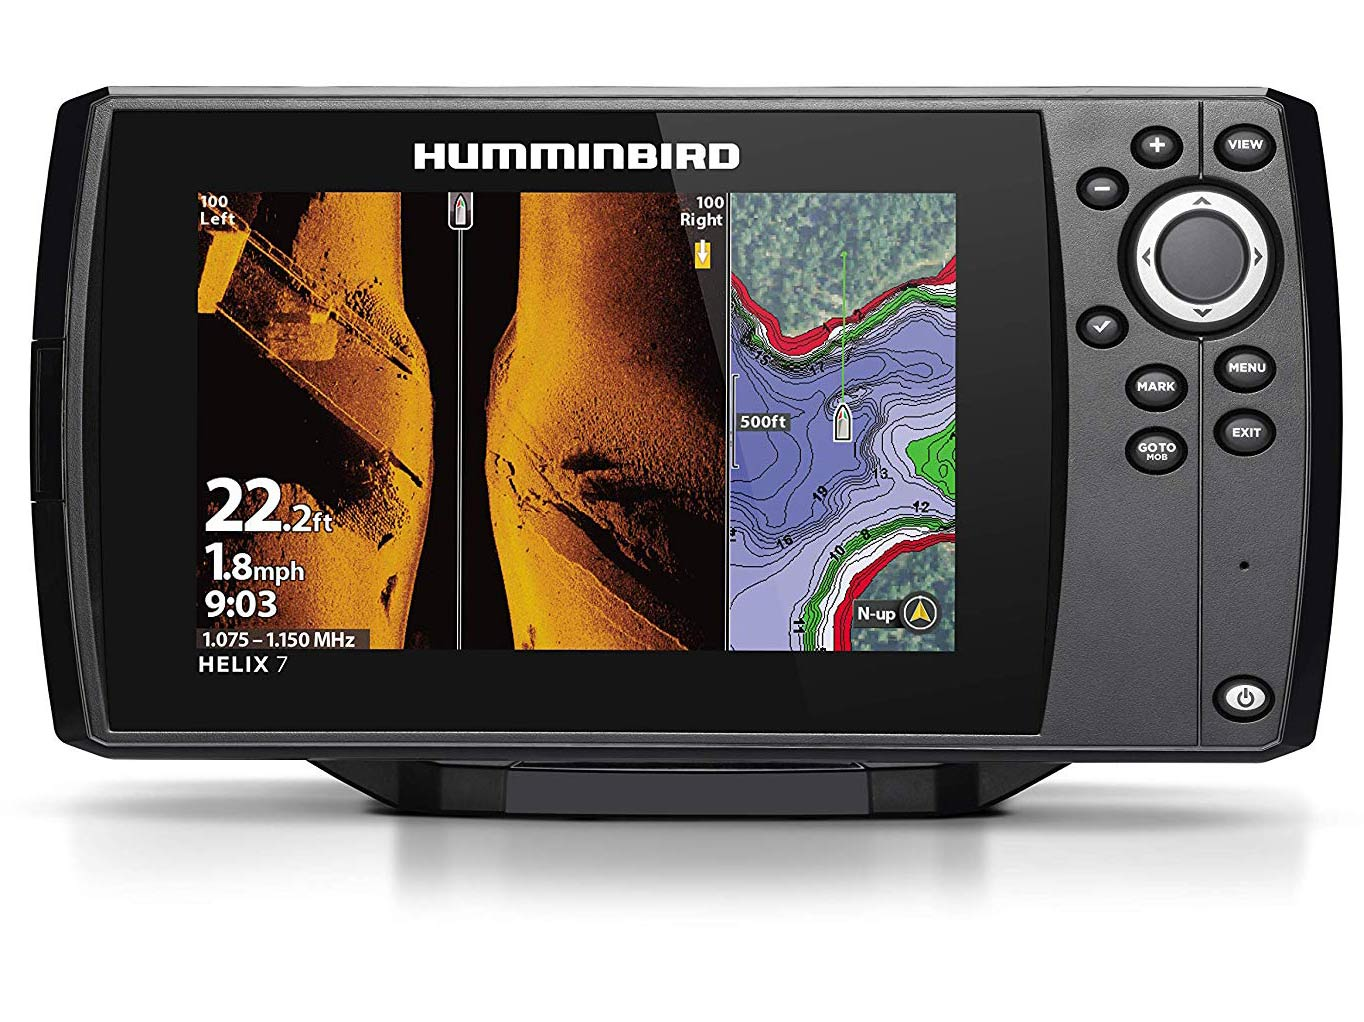 Humminbird Helix 7 Fish Finder